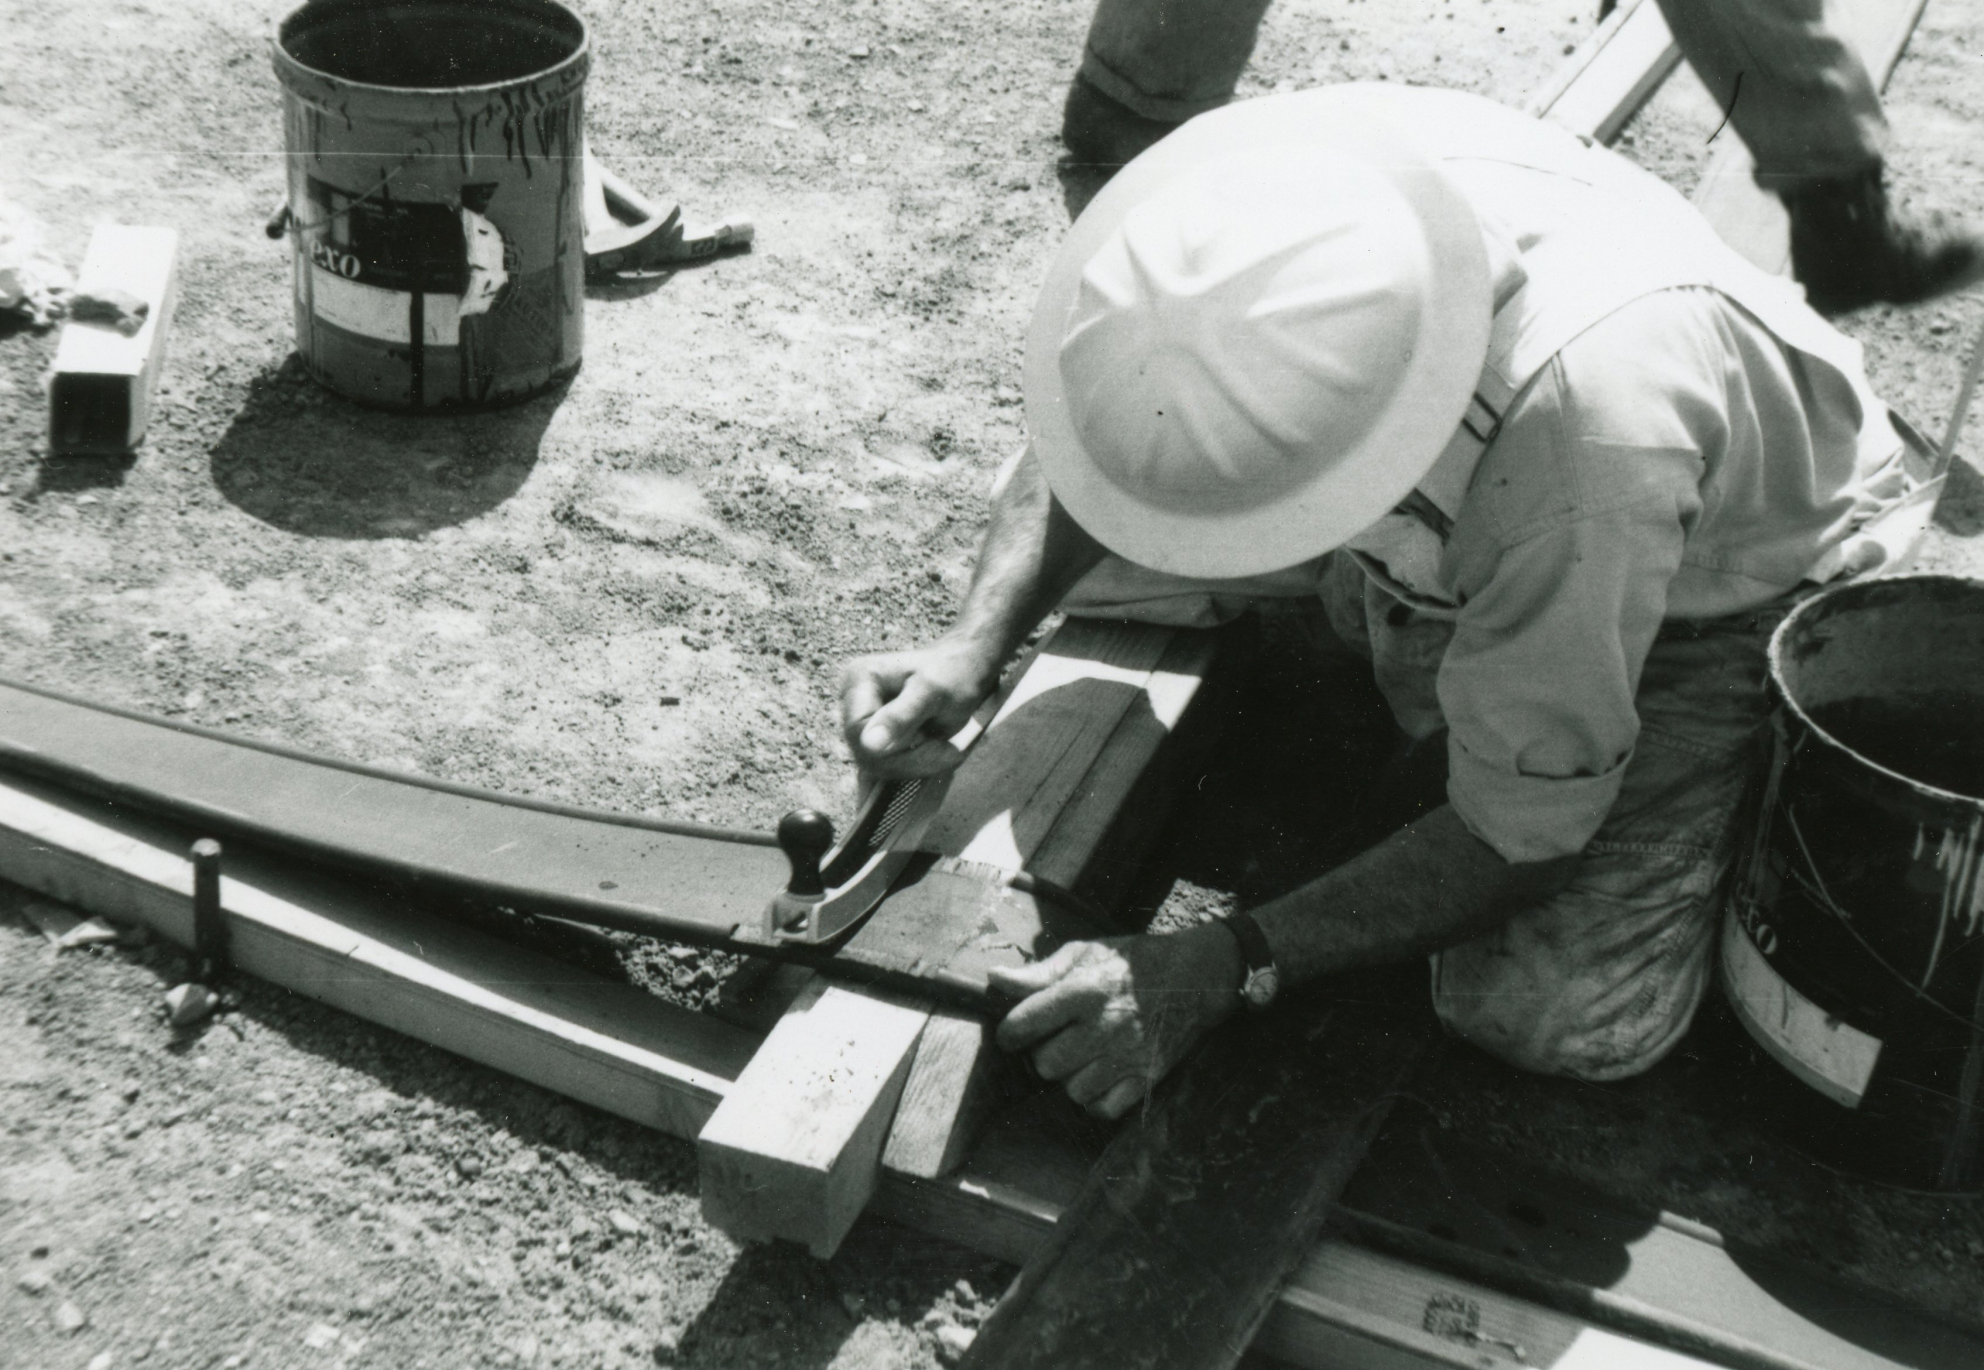 Columbine Historical Image 3 - black and white photo of a workers cutting material